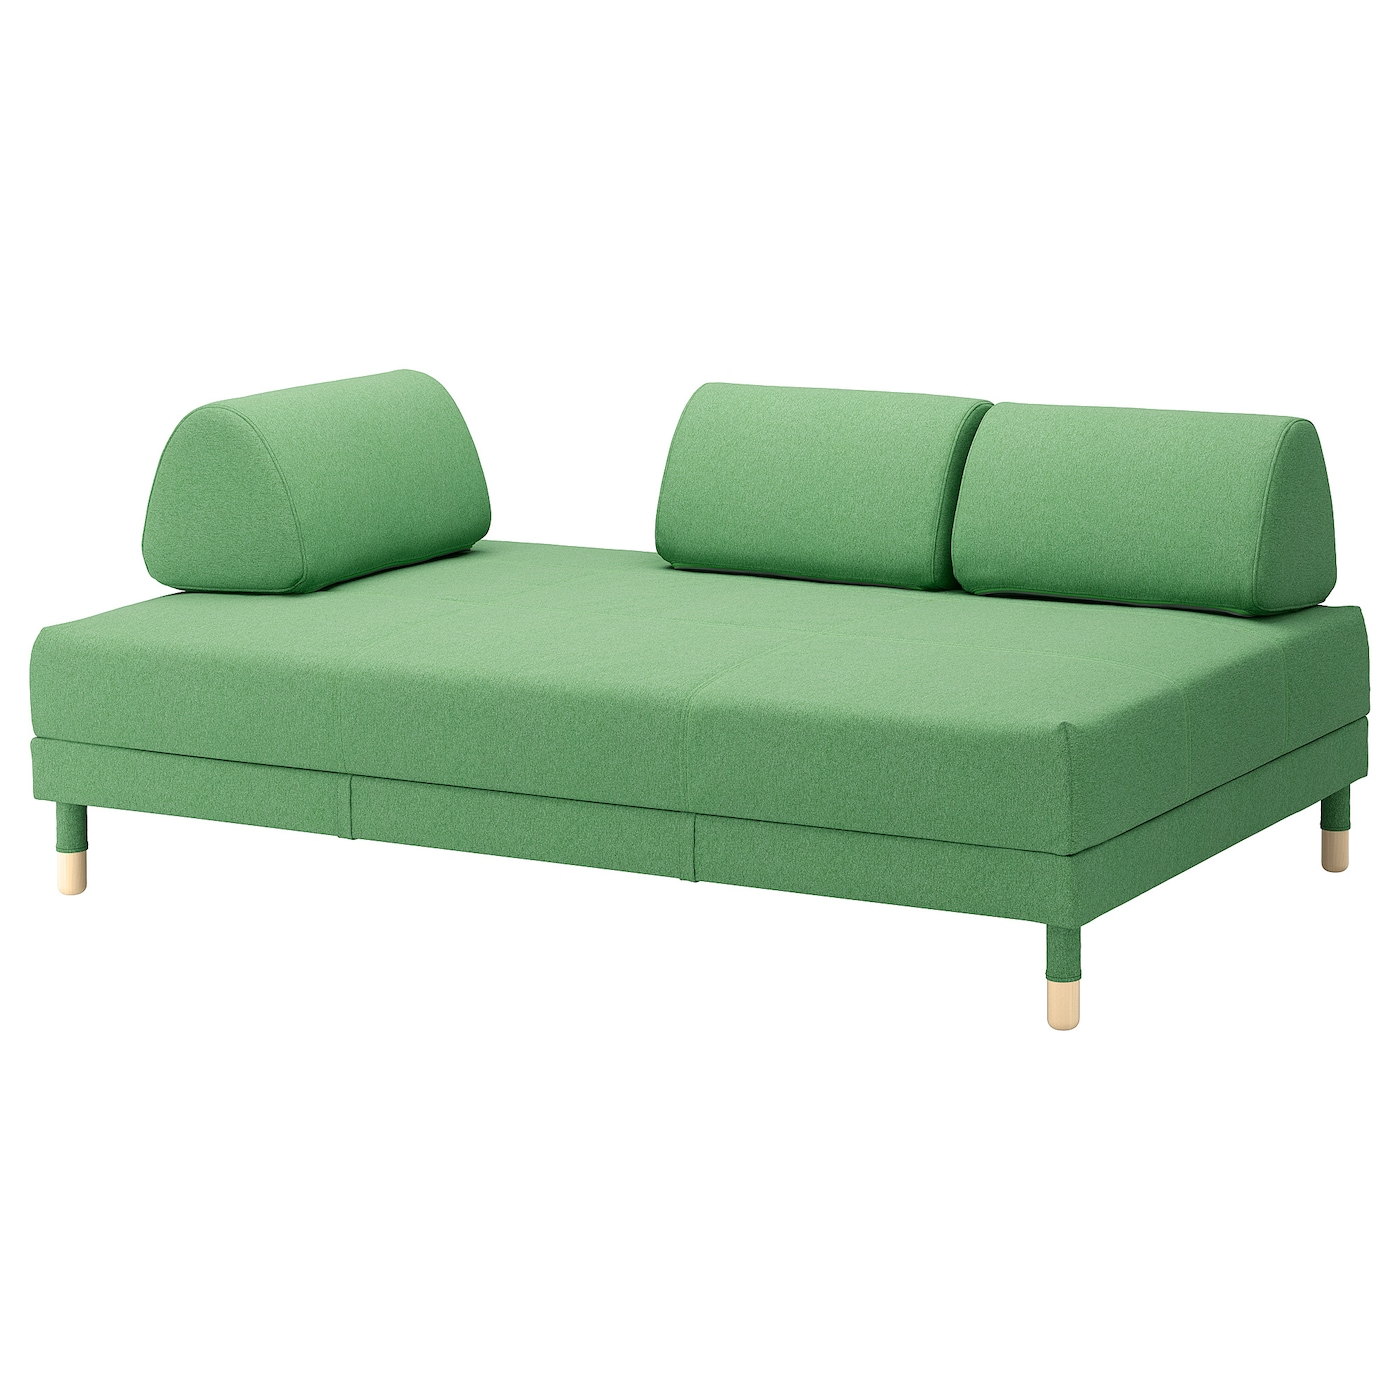 Ikea Flottebo Sofa Bed The Cover Is Easy To Keep Clean Since It Removable